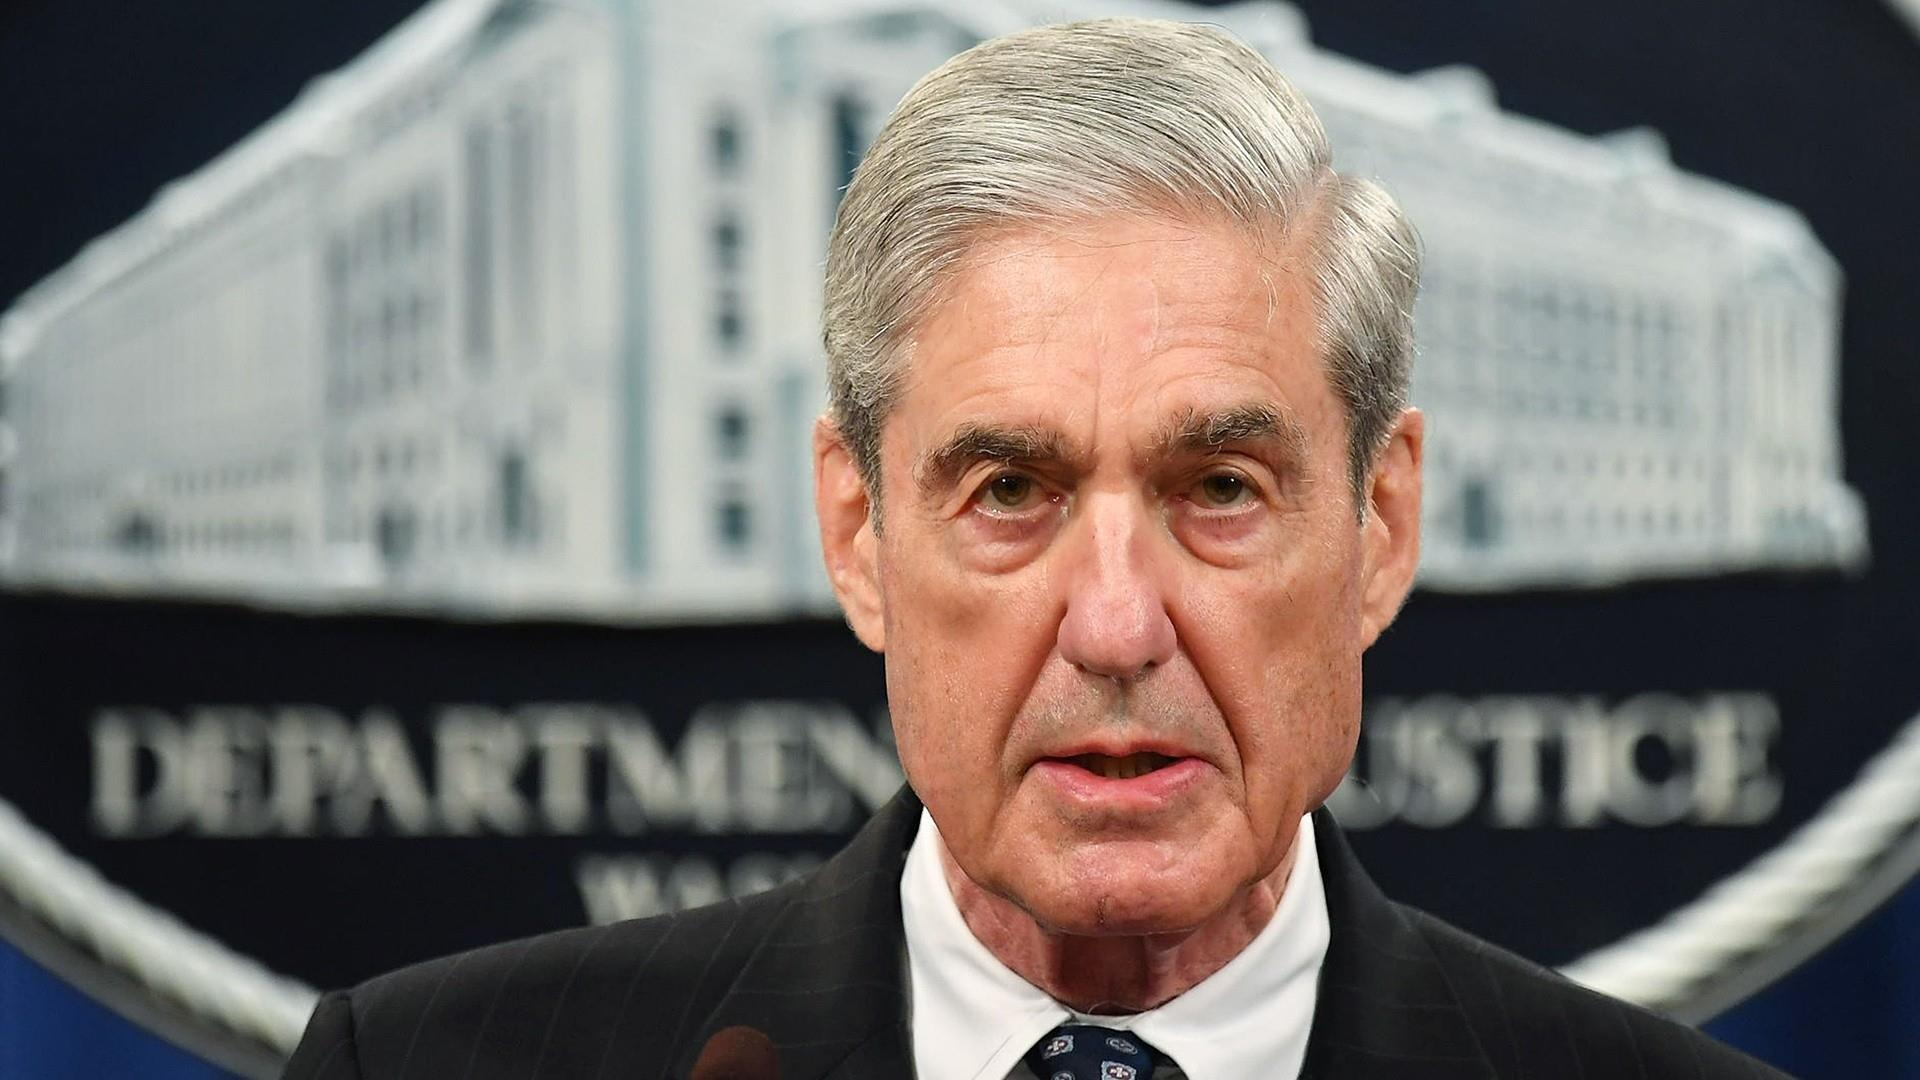 Robert Mueller to testify publicly before Congress